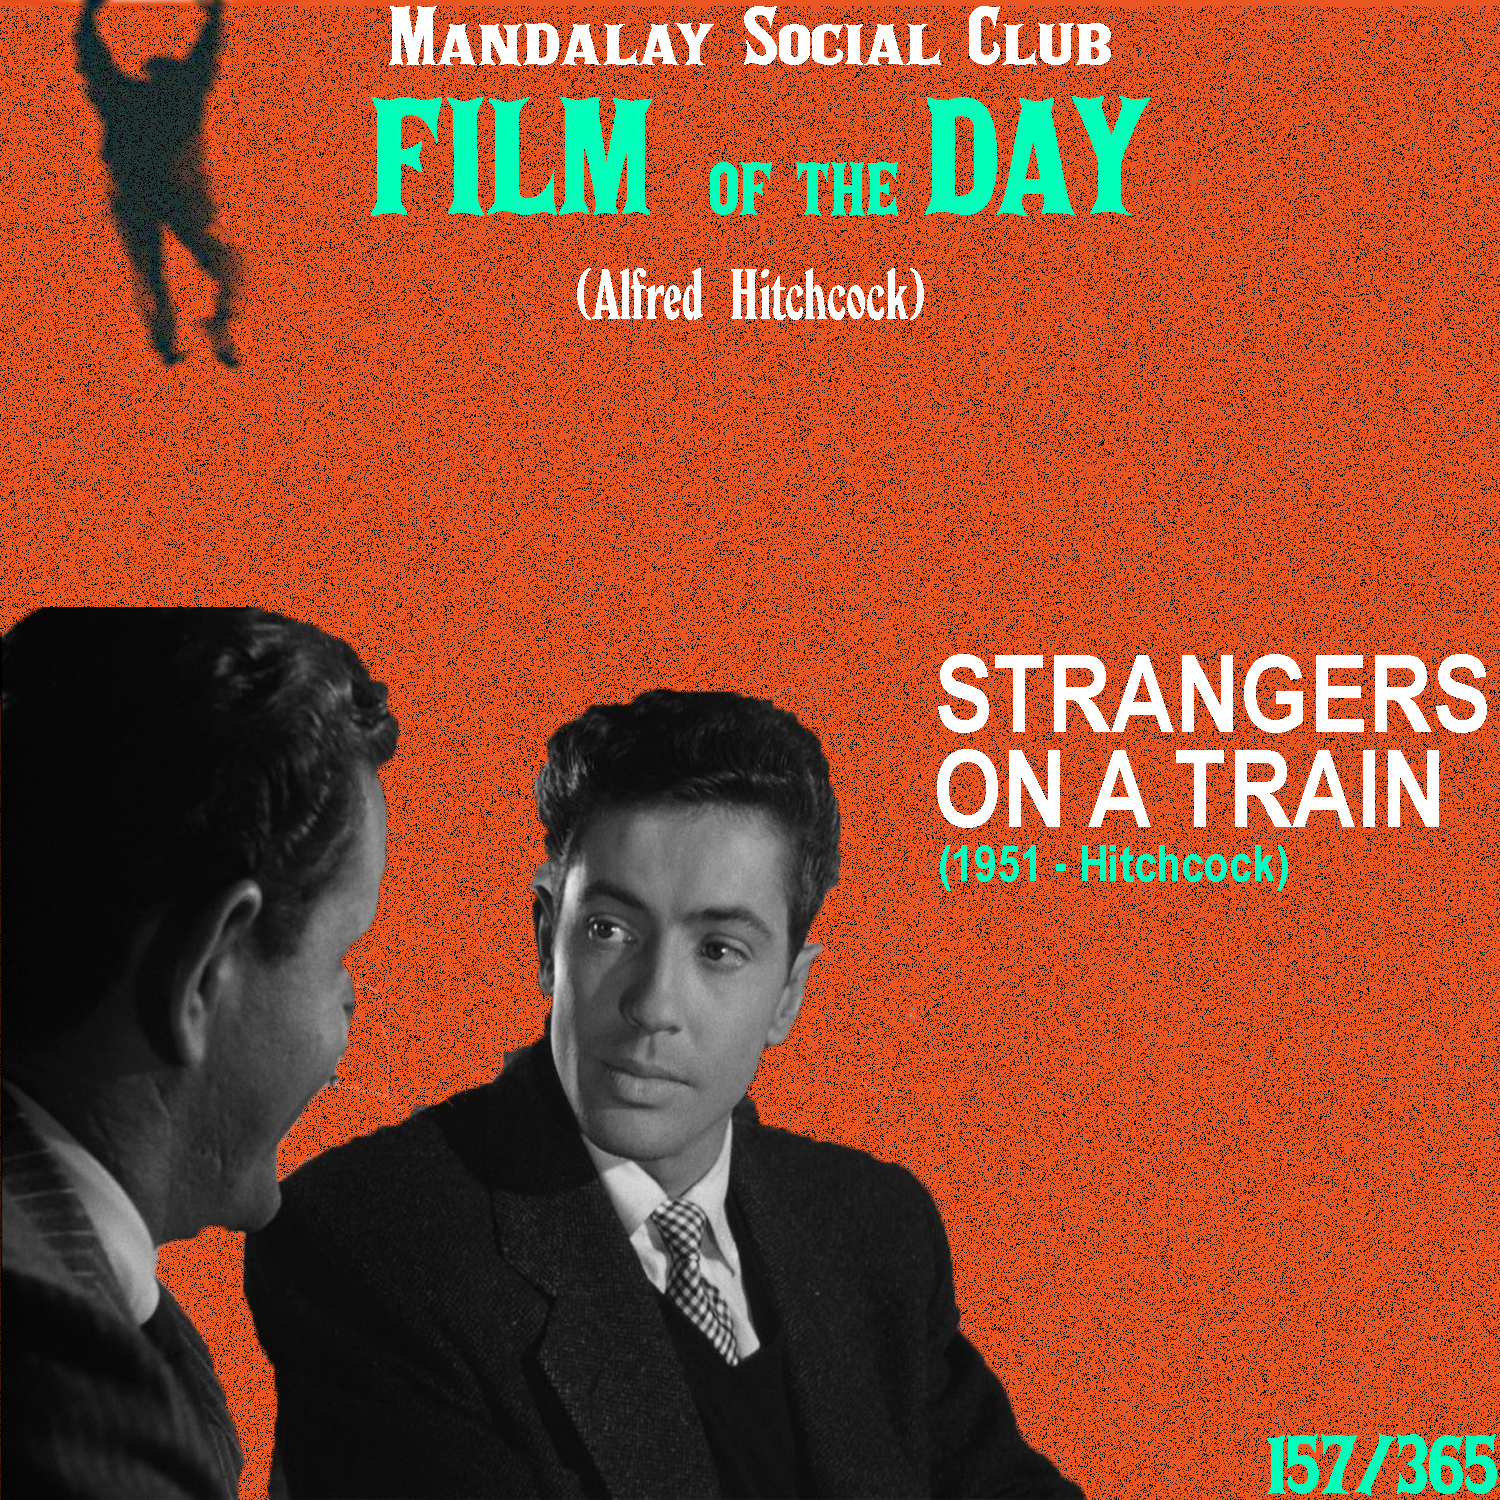 STRANGERS ON A TRAIN     (dir. Alfred Hitchcock)    Strangers on a Train  kickstarted the peak decade of Hitchcock's career and helped garner a newfound respect and interest in Hitchcock's work.  Farley Granger stars as tennis star Guy, who meets Bruno, a wealthy young man that happens to cross paths with Guy one day on the train. Their conversation reveals that each of them want one person out of their life. For Guy, it's his uncooperative wife who refuses to sign for divorce, and for Bruno it's his demanding father. Bruno, a true psychopath, suggests to Guy that they should swap each other's murders: Guy should kill Bruno's father and Bruno should kill Guy's wife. Bruno, obviously finding the idea ridiculous, humors the dangerously insane Bruno as he leaves the train. However, Bruno takes this humoring completely serious and kills Guy's wife. Now, he forces the respectable Guy to perform the same heinous crime of murder.   Strangers on a Train  is one of Hitchcock's most memorable films and as I stated earlier, it opened up the doors to the most profound decade of the filmmaker's career.    4/5     WATCH: Netflix (FREE), iTunes (RENT)